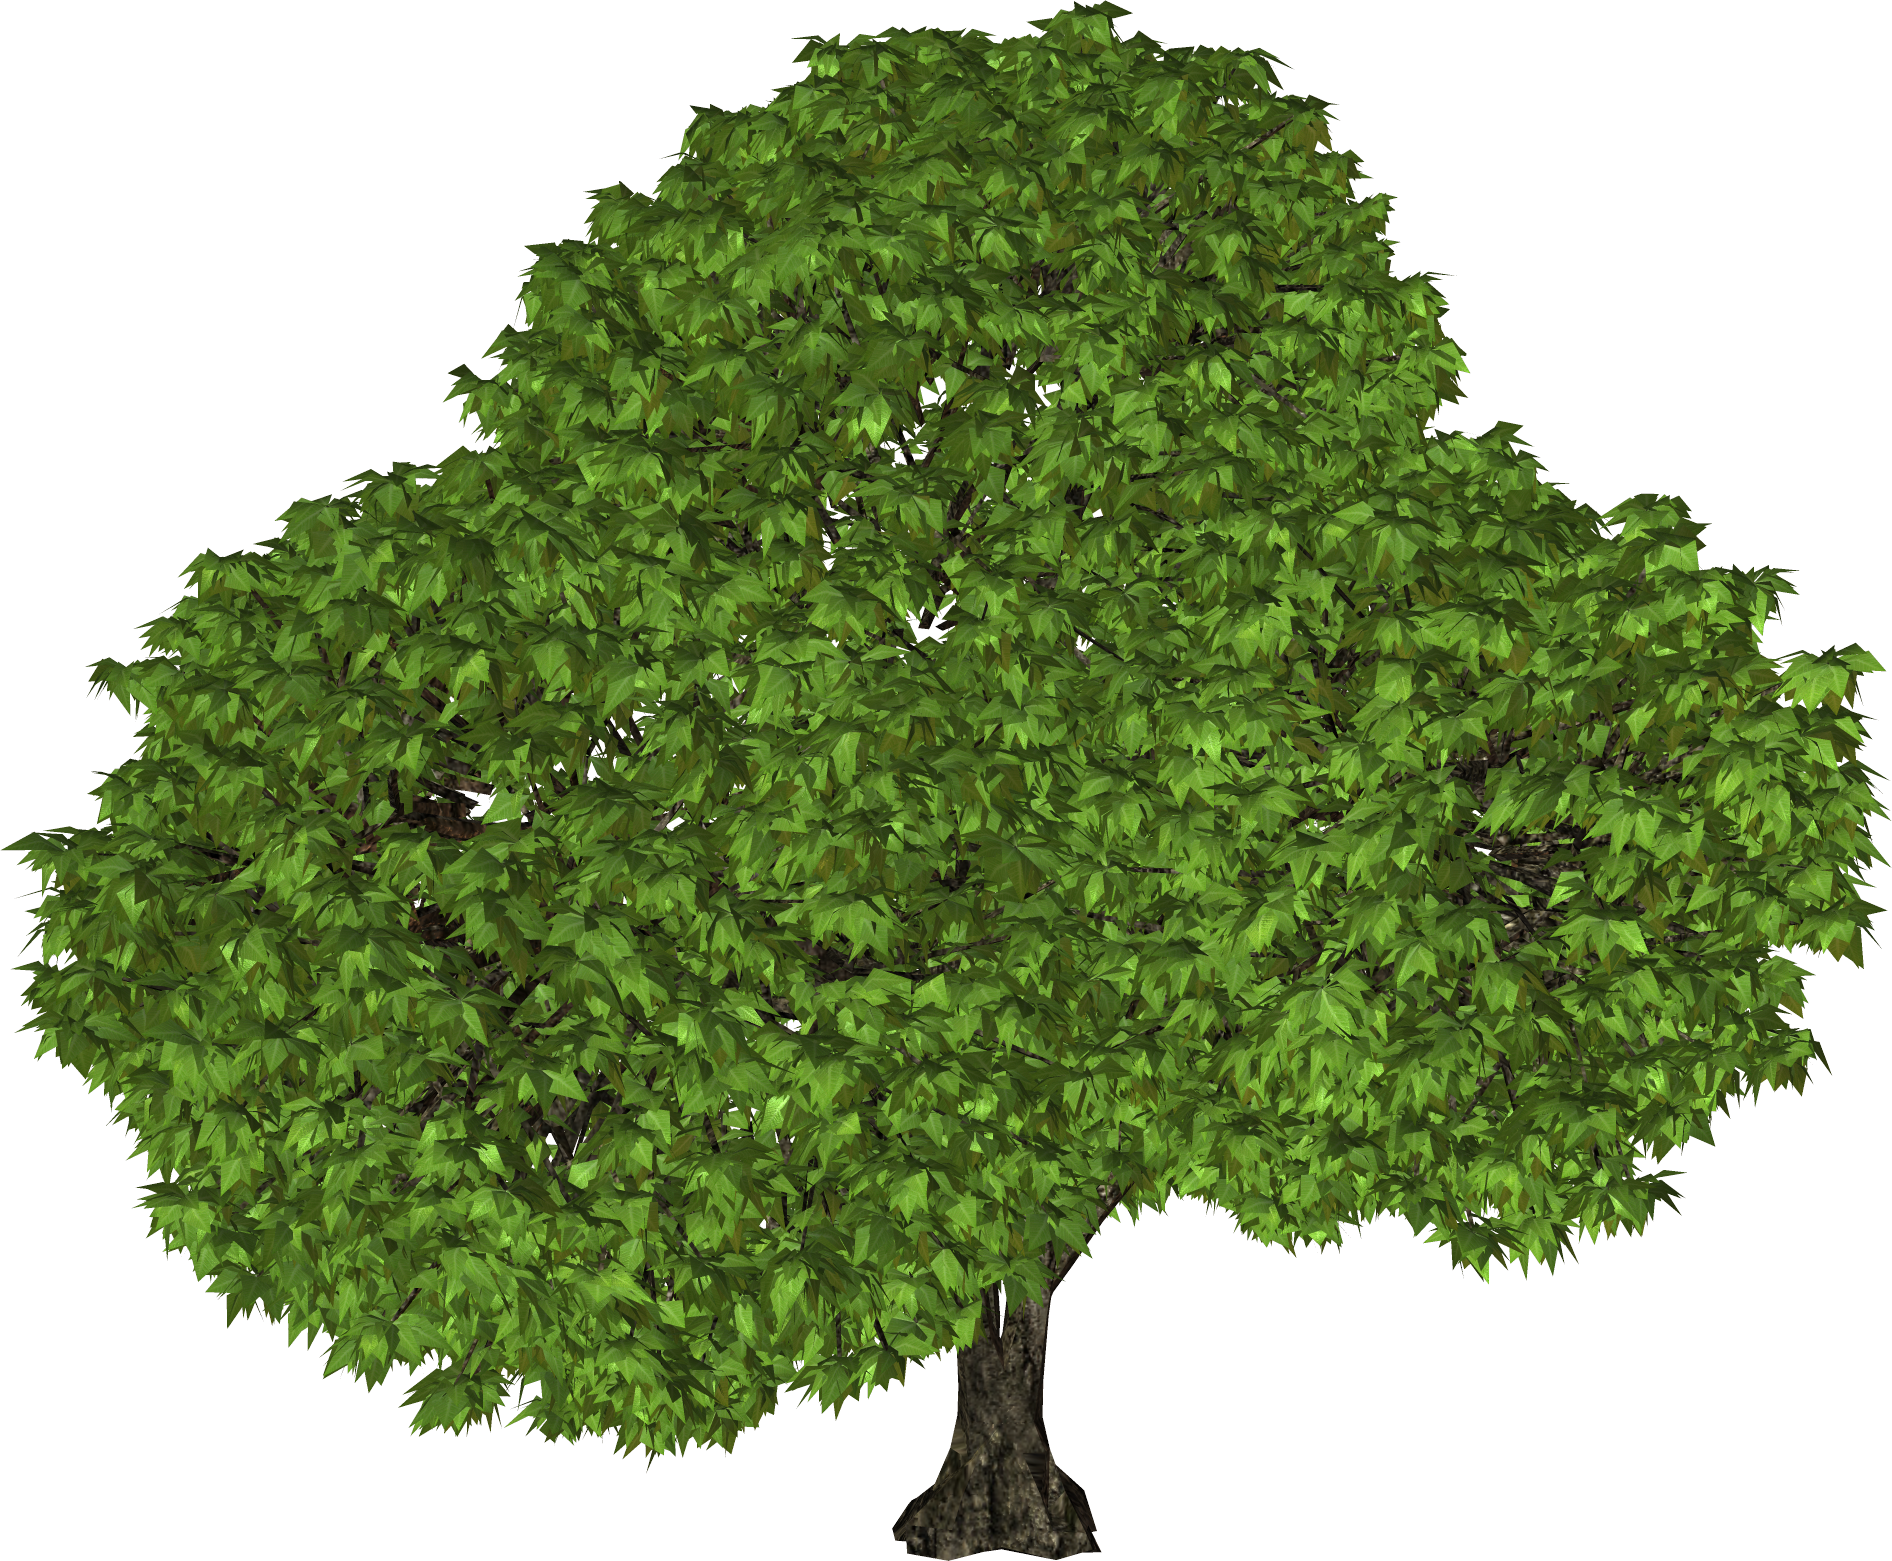 clipart tree images pictures download #8251